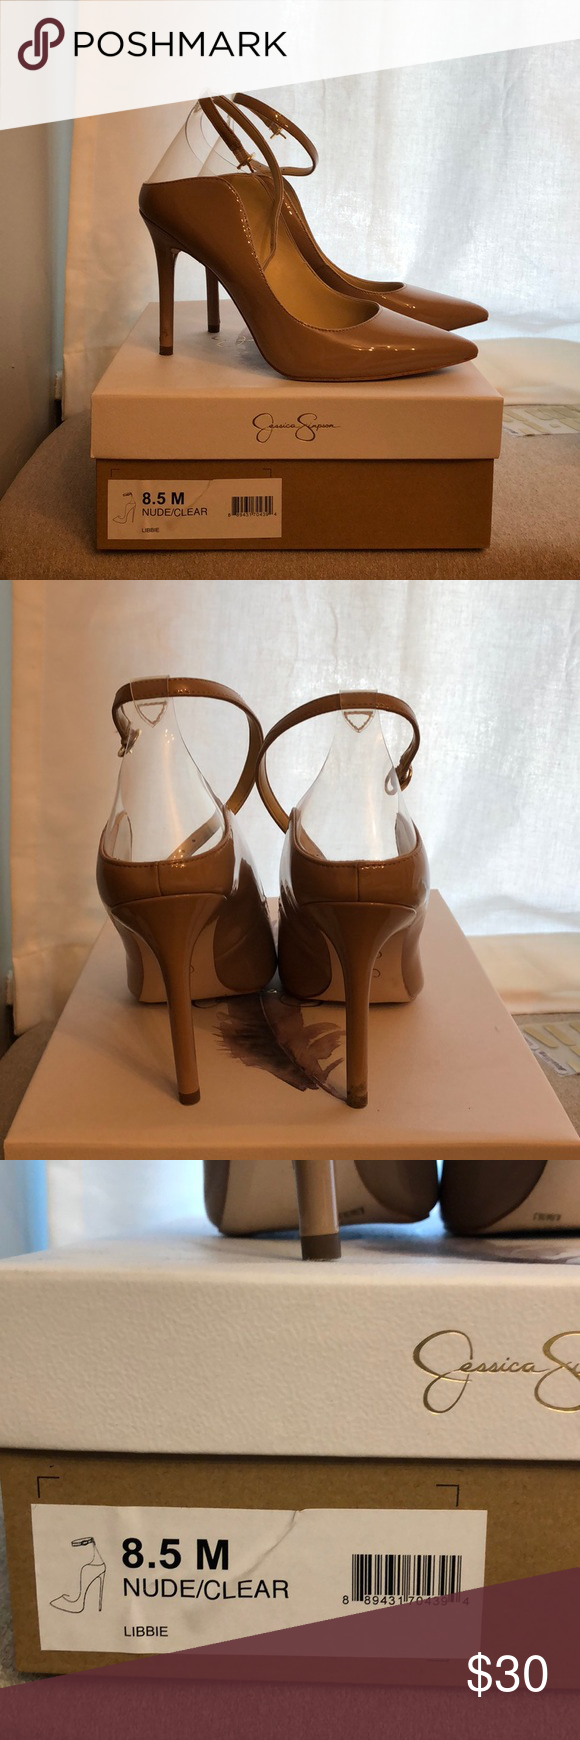 82b27235ee0 Jessica Simpson Libbie Heels Nude patent with clear from heel to ankle  strap. Worn one time. I typically wear a 7.5-8 and these fit me perfect.